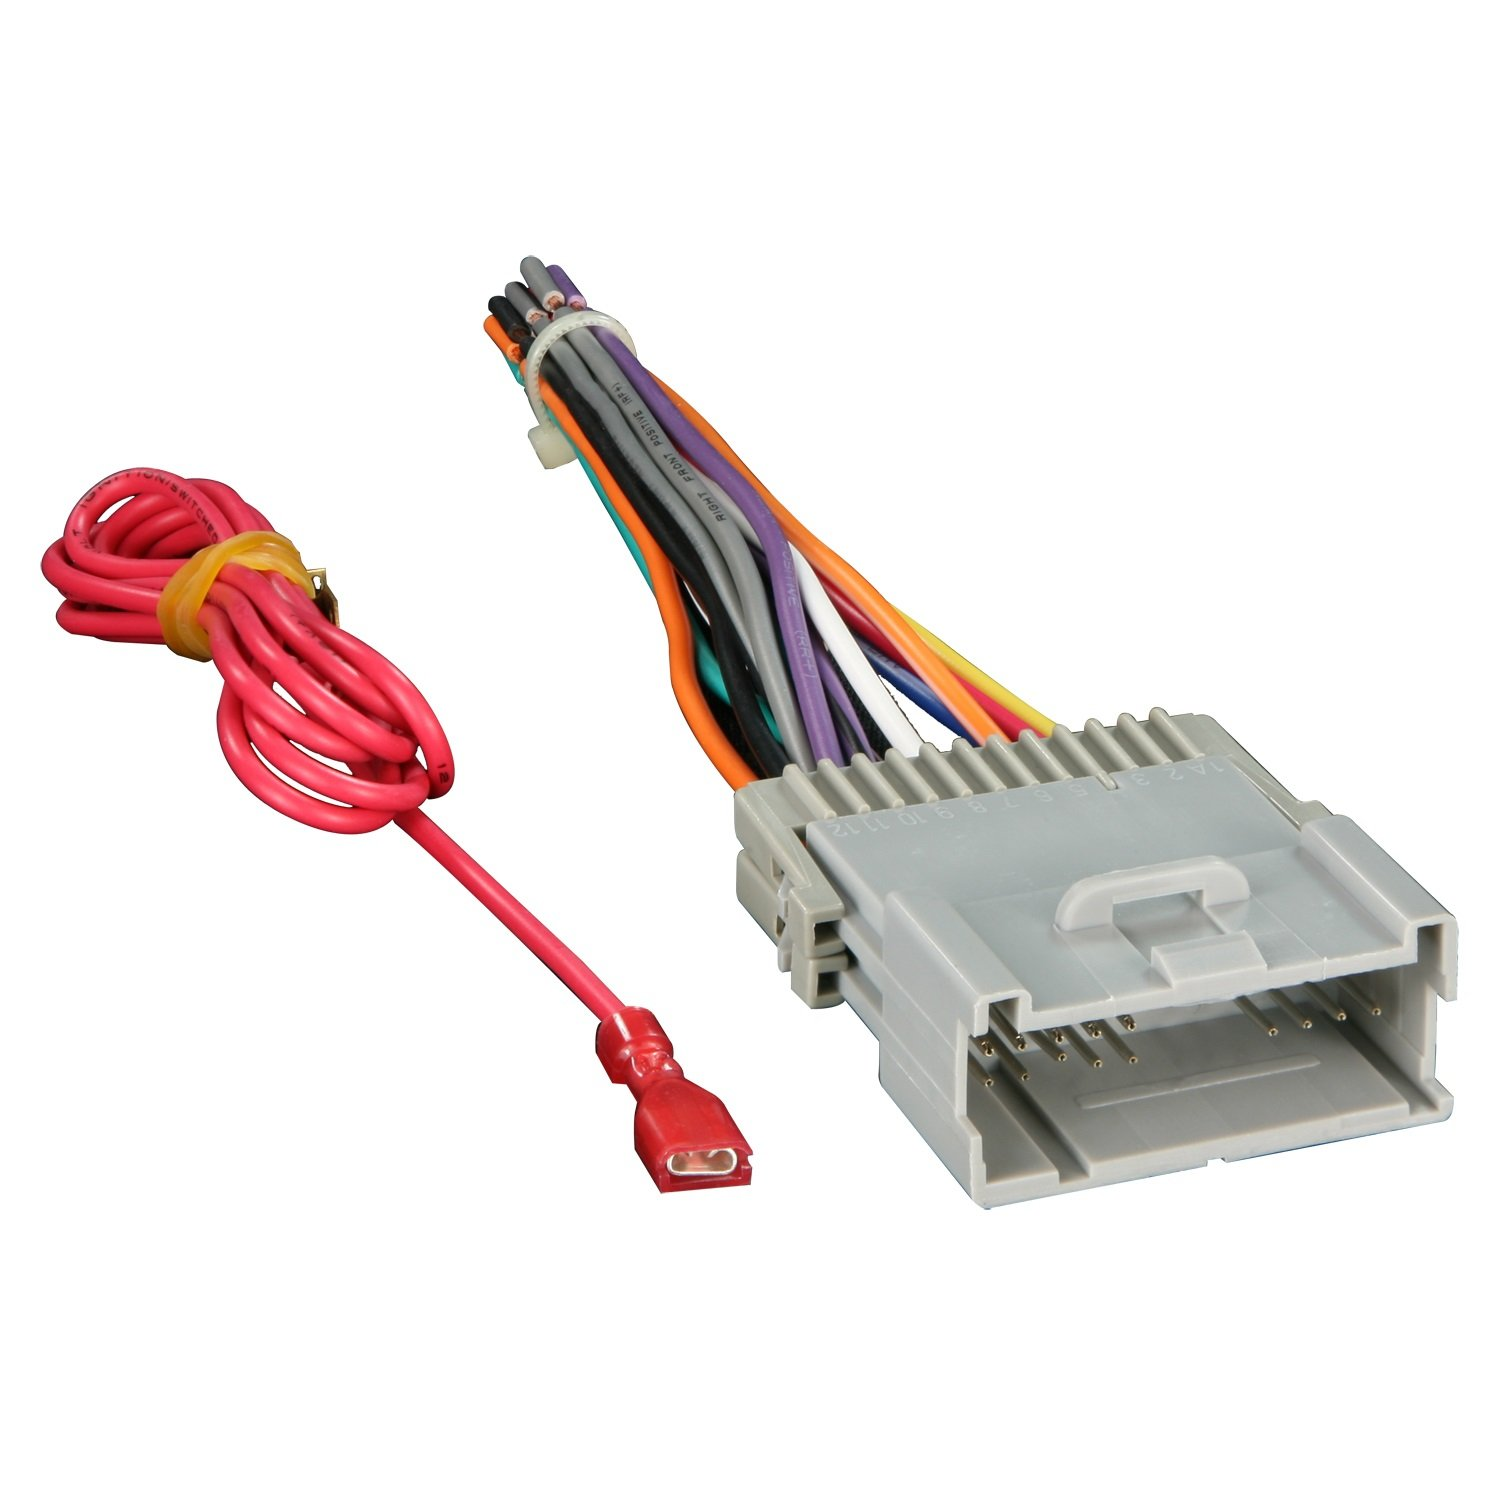 61eewxp9orL._SL1500_ amazon com metra 70 2003 radio wiring harness for gm 98 08 kenwood wiring harness walmart at crackthecode.co